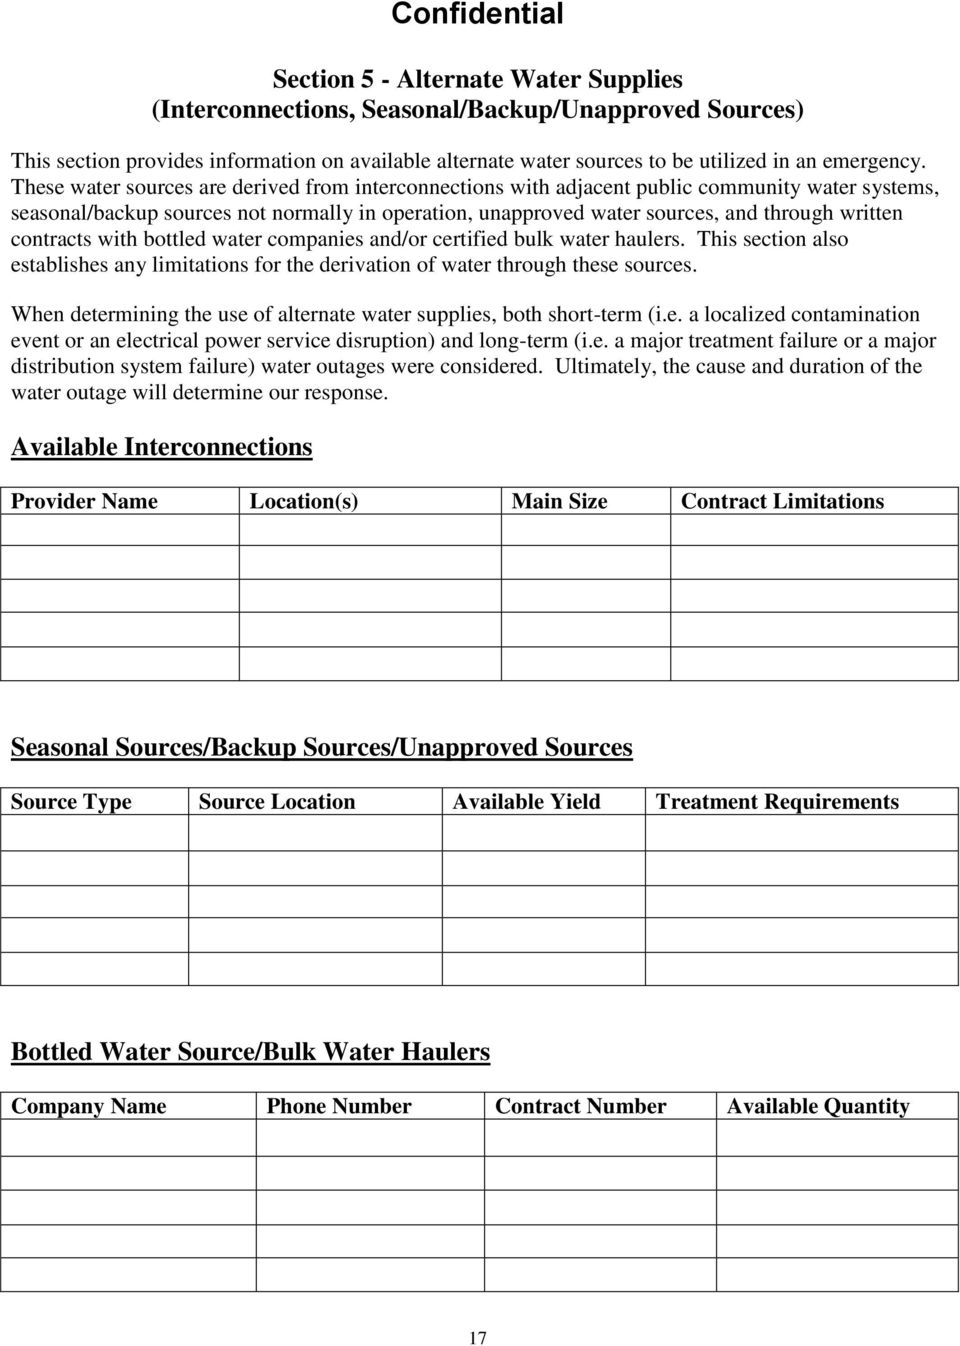 contracts with bottled water companies and/or certified bulk water haulers. This section also establishes any limitations for the derivation of water through these sources.